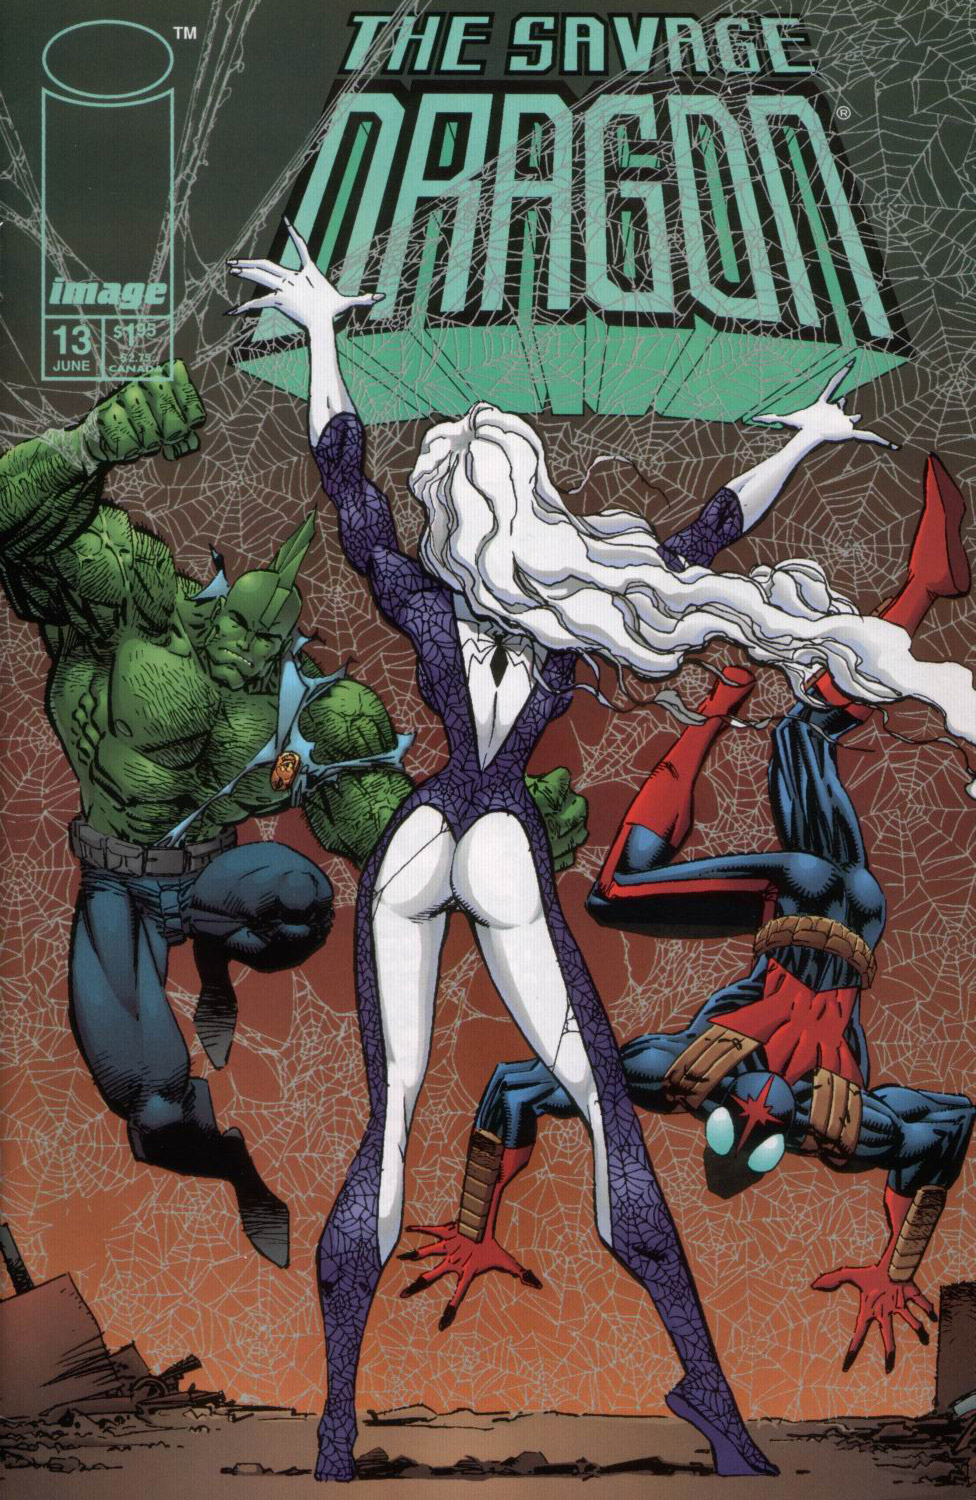 Cover Savage Dragon Vol.2 #13